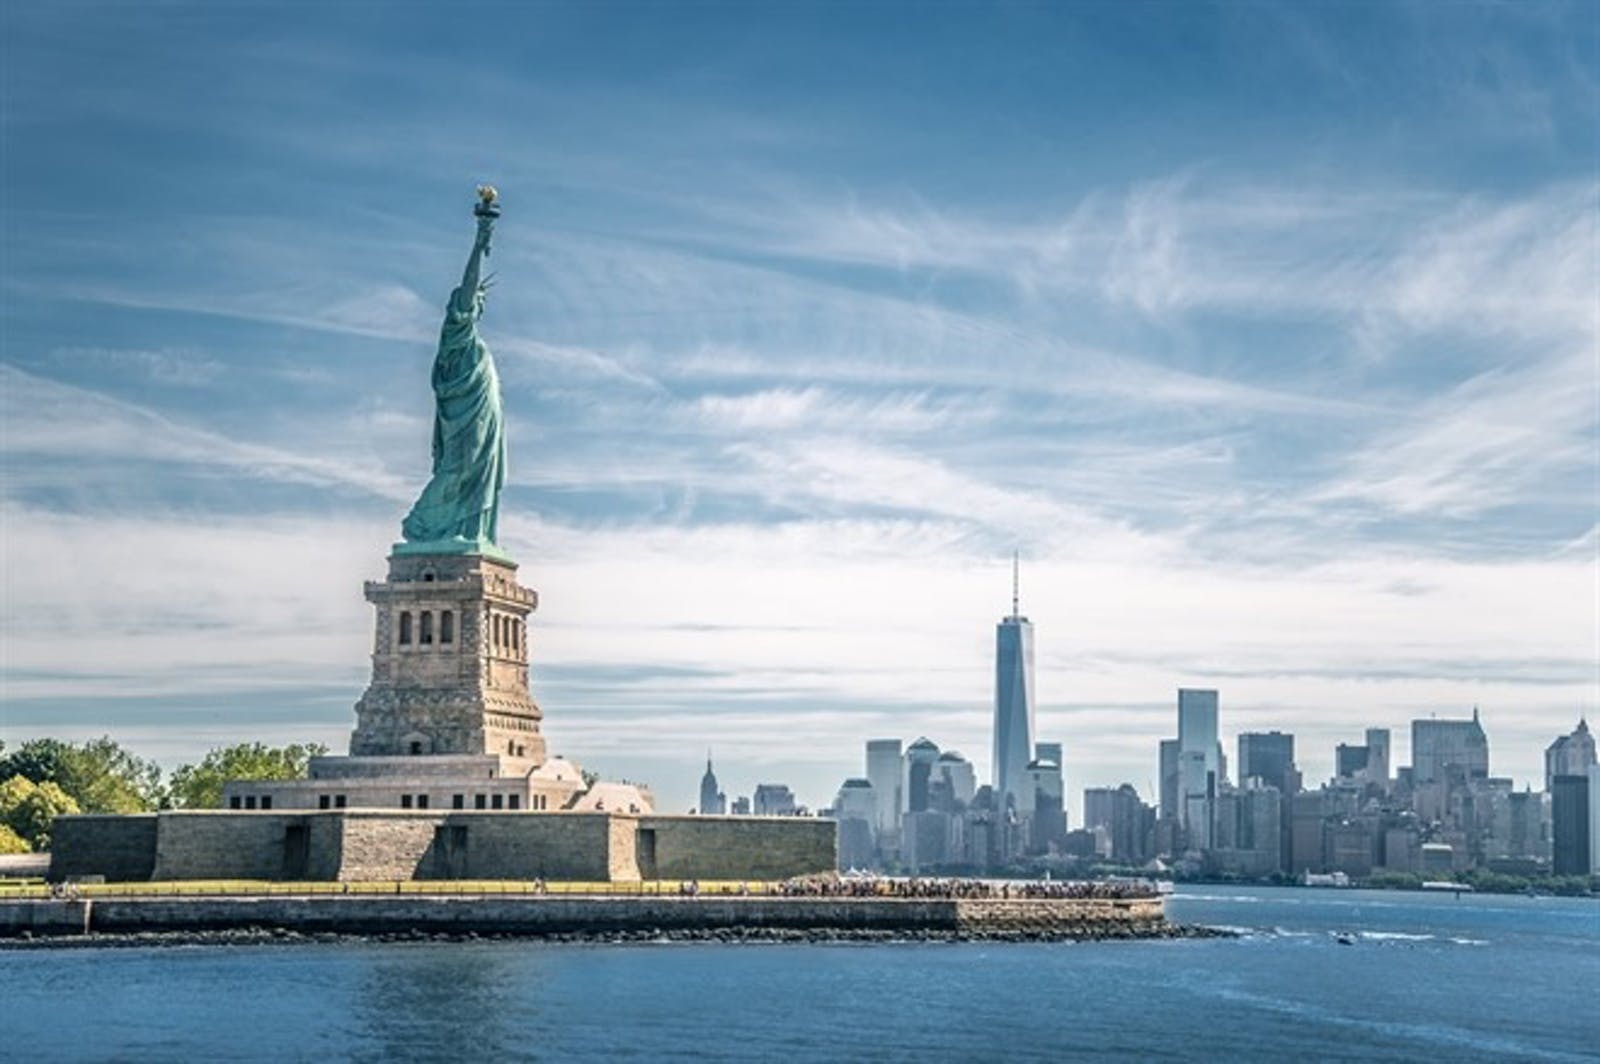 Statue Of Liberty & New York Skyline